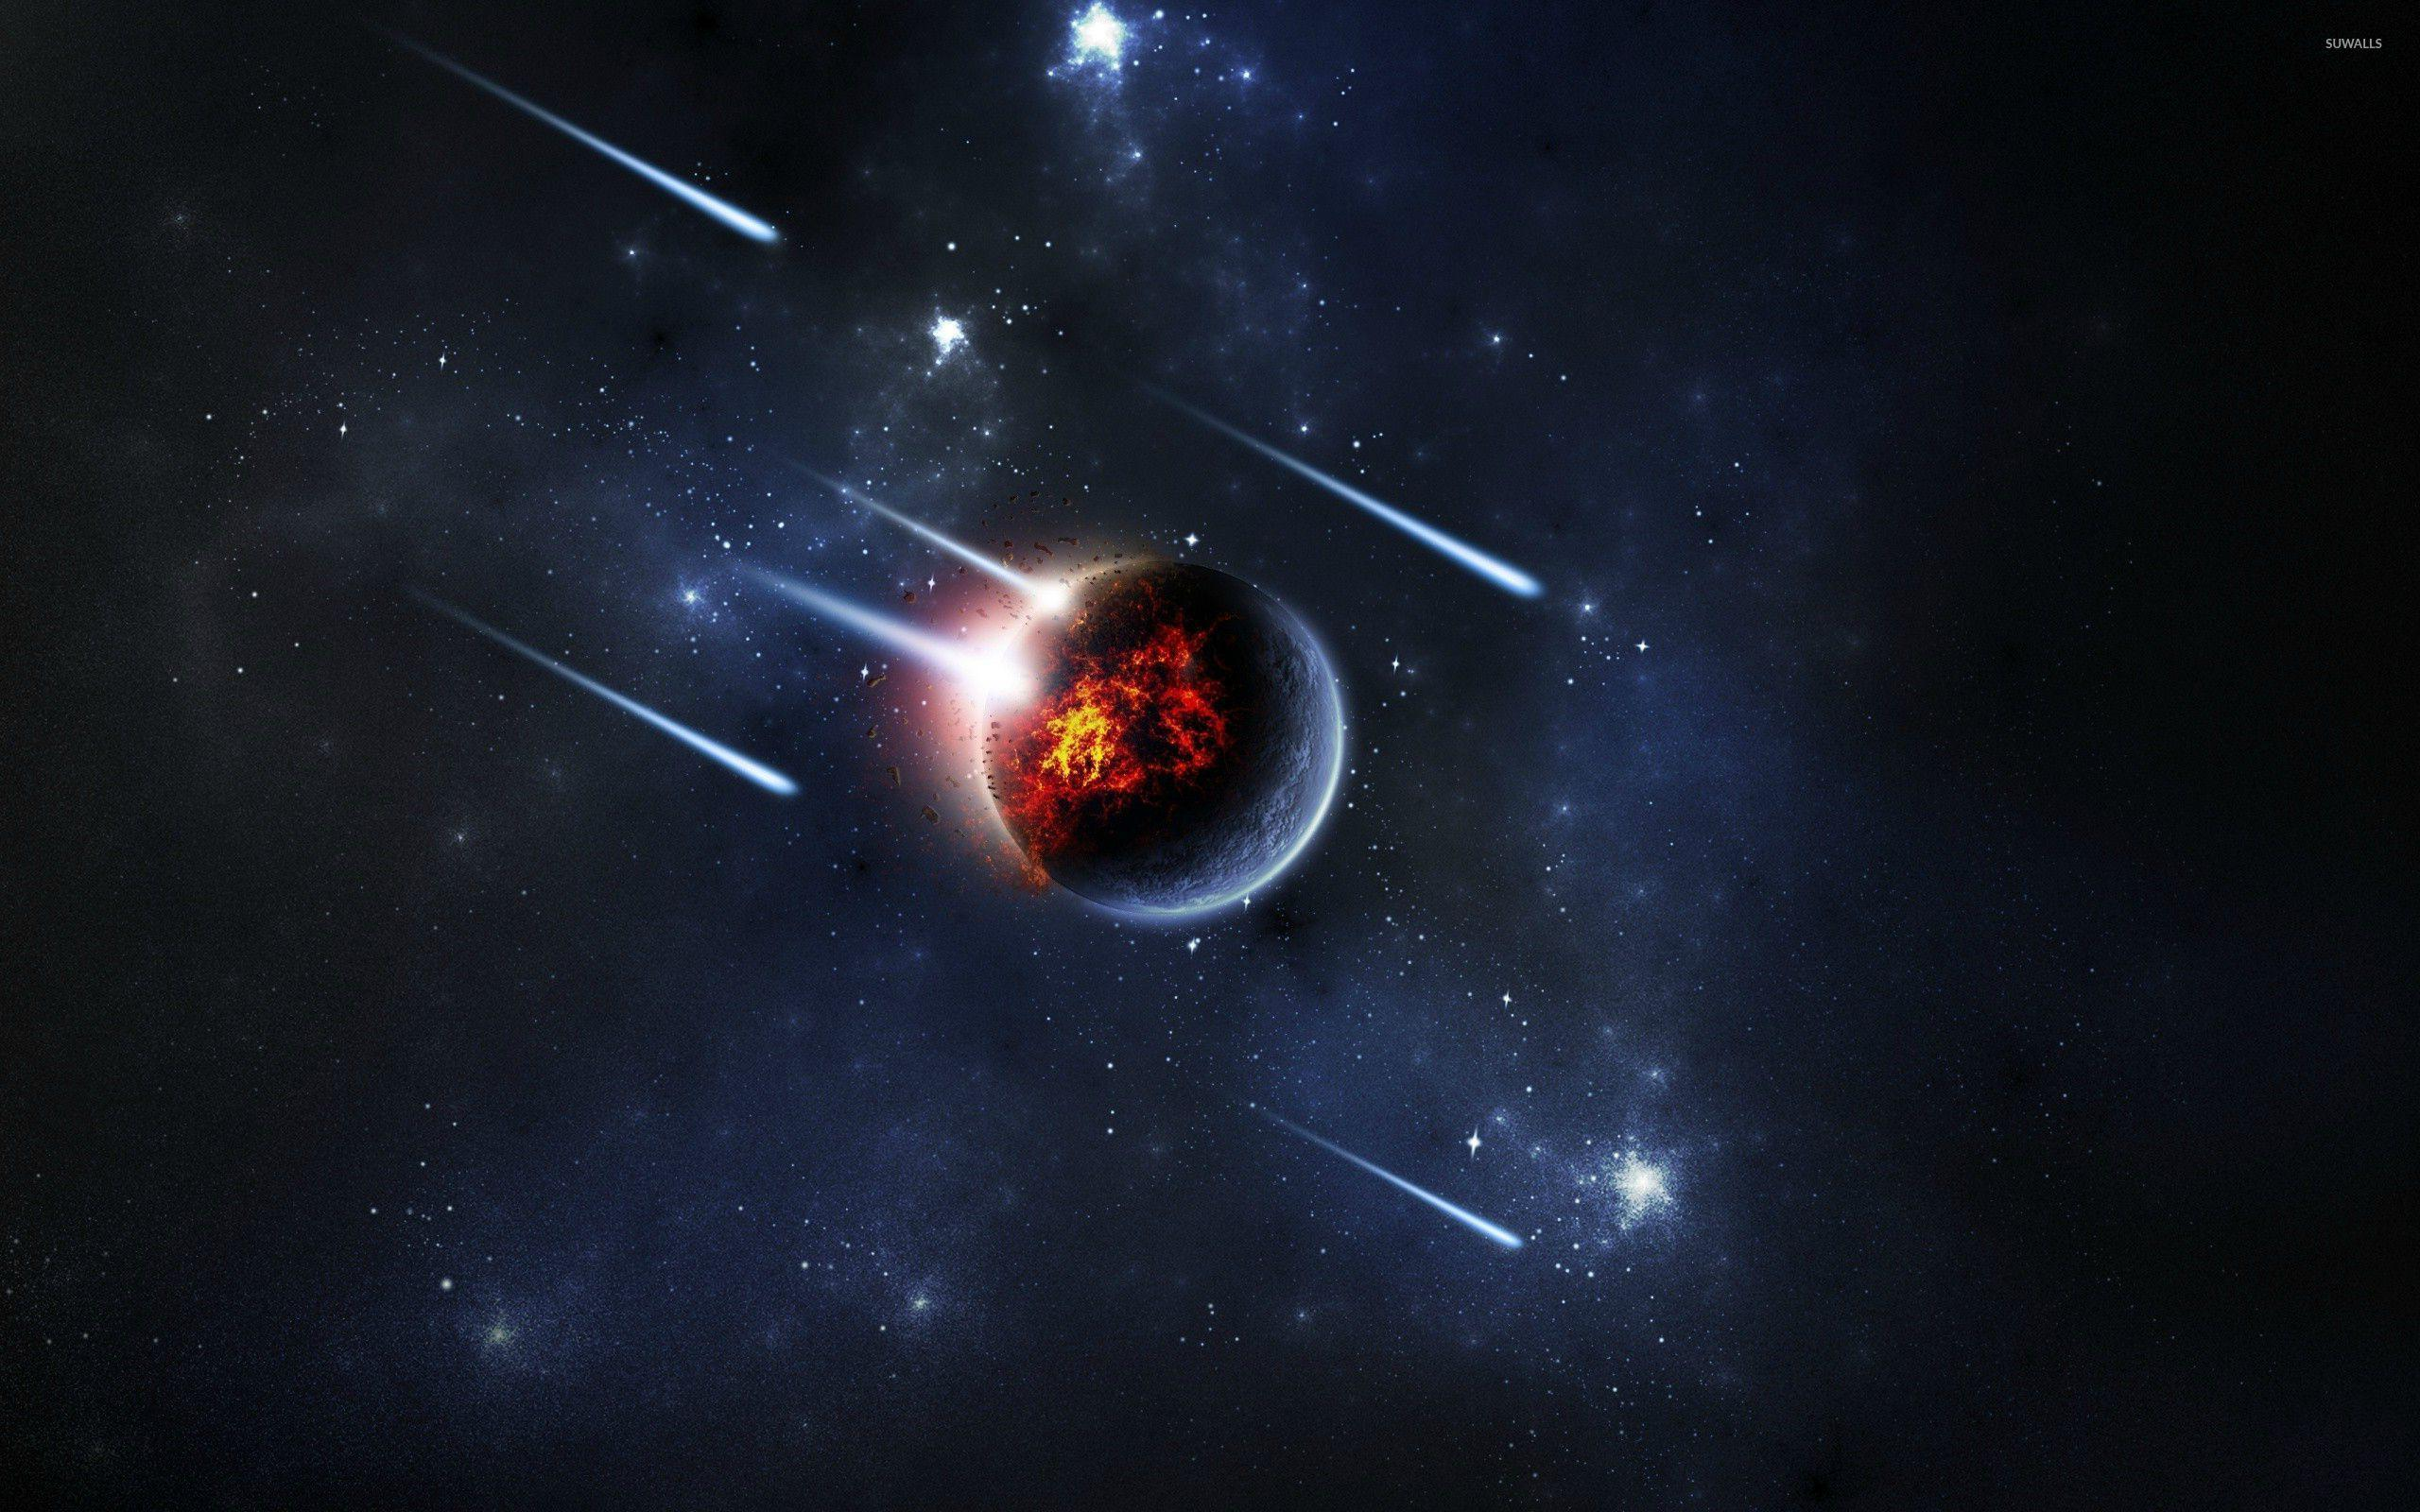 Meteor shower wallpaper - Fantasy wallpapers - #27214